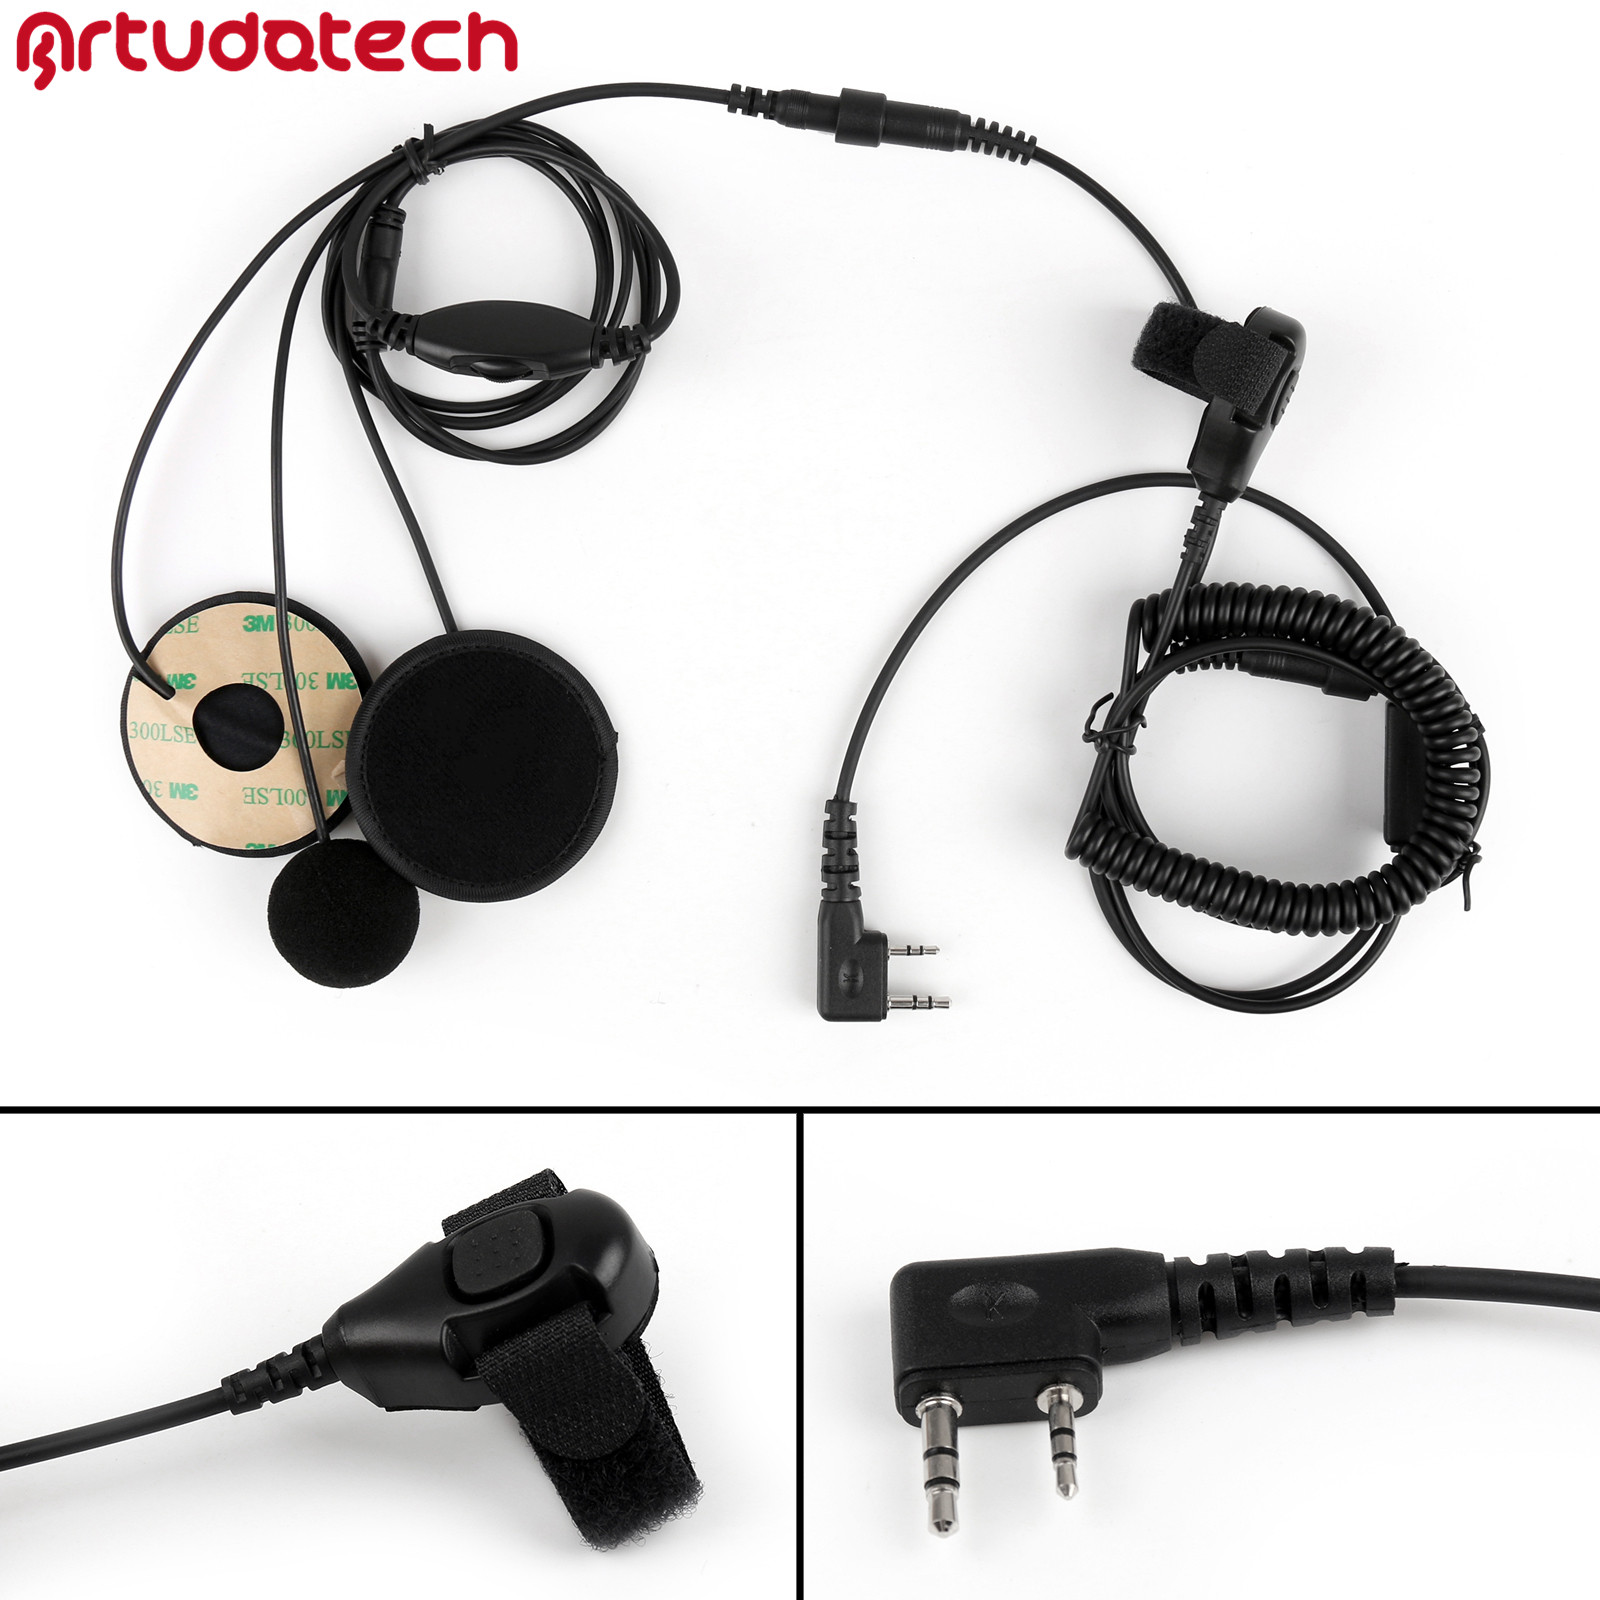 Artudatech 1Pcs 2 Pin Motorcycle Helmet Headset Adjustable Volume PTT For Kenwood <font><b>TK</b></font> <font><b>3107</b></font> Walkie Talkie image